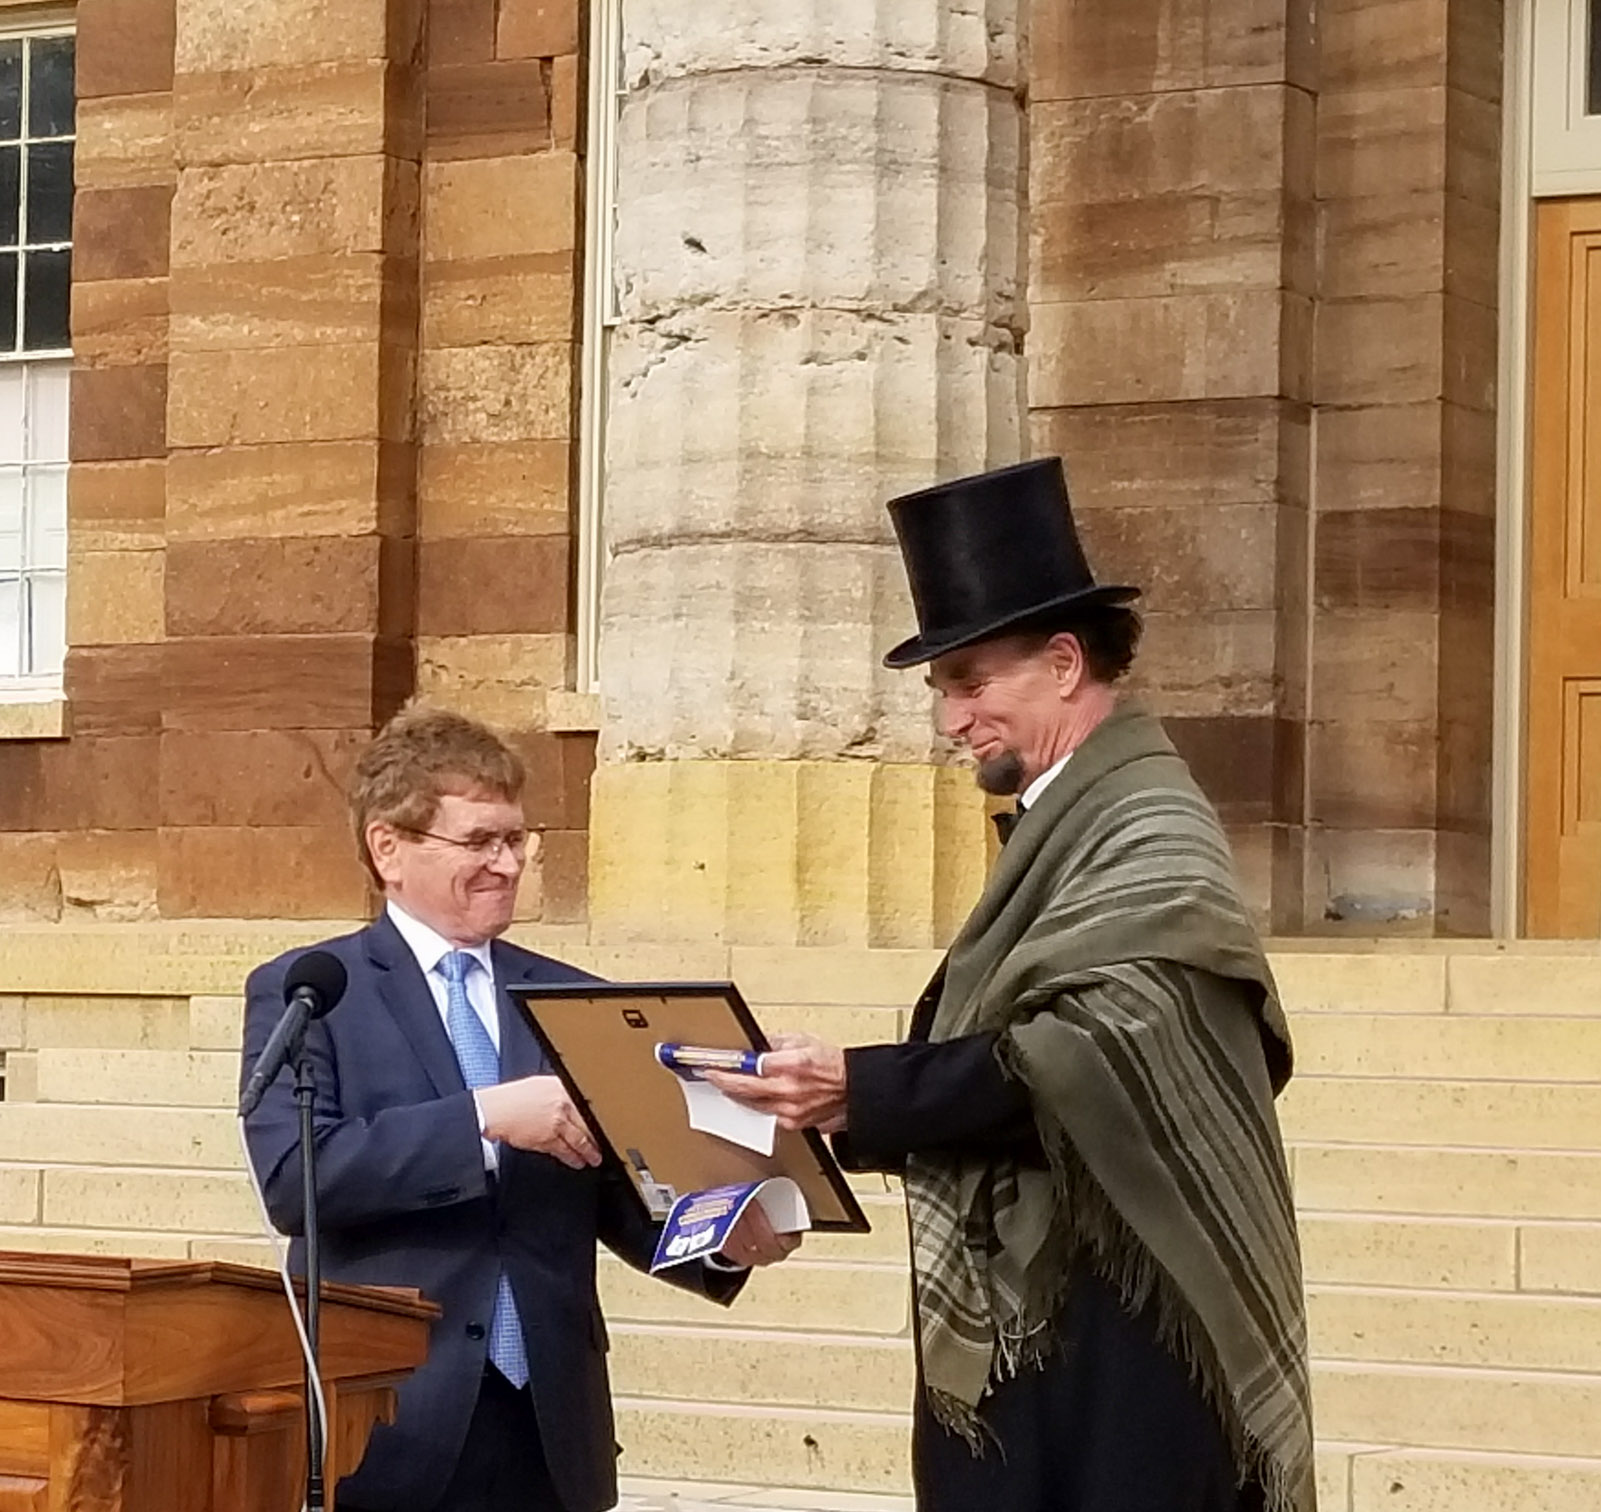 Illinois Bicentennial Flag Raising Ceremony, Abraham Lincoln Impersonator